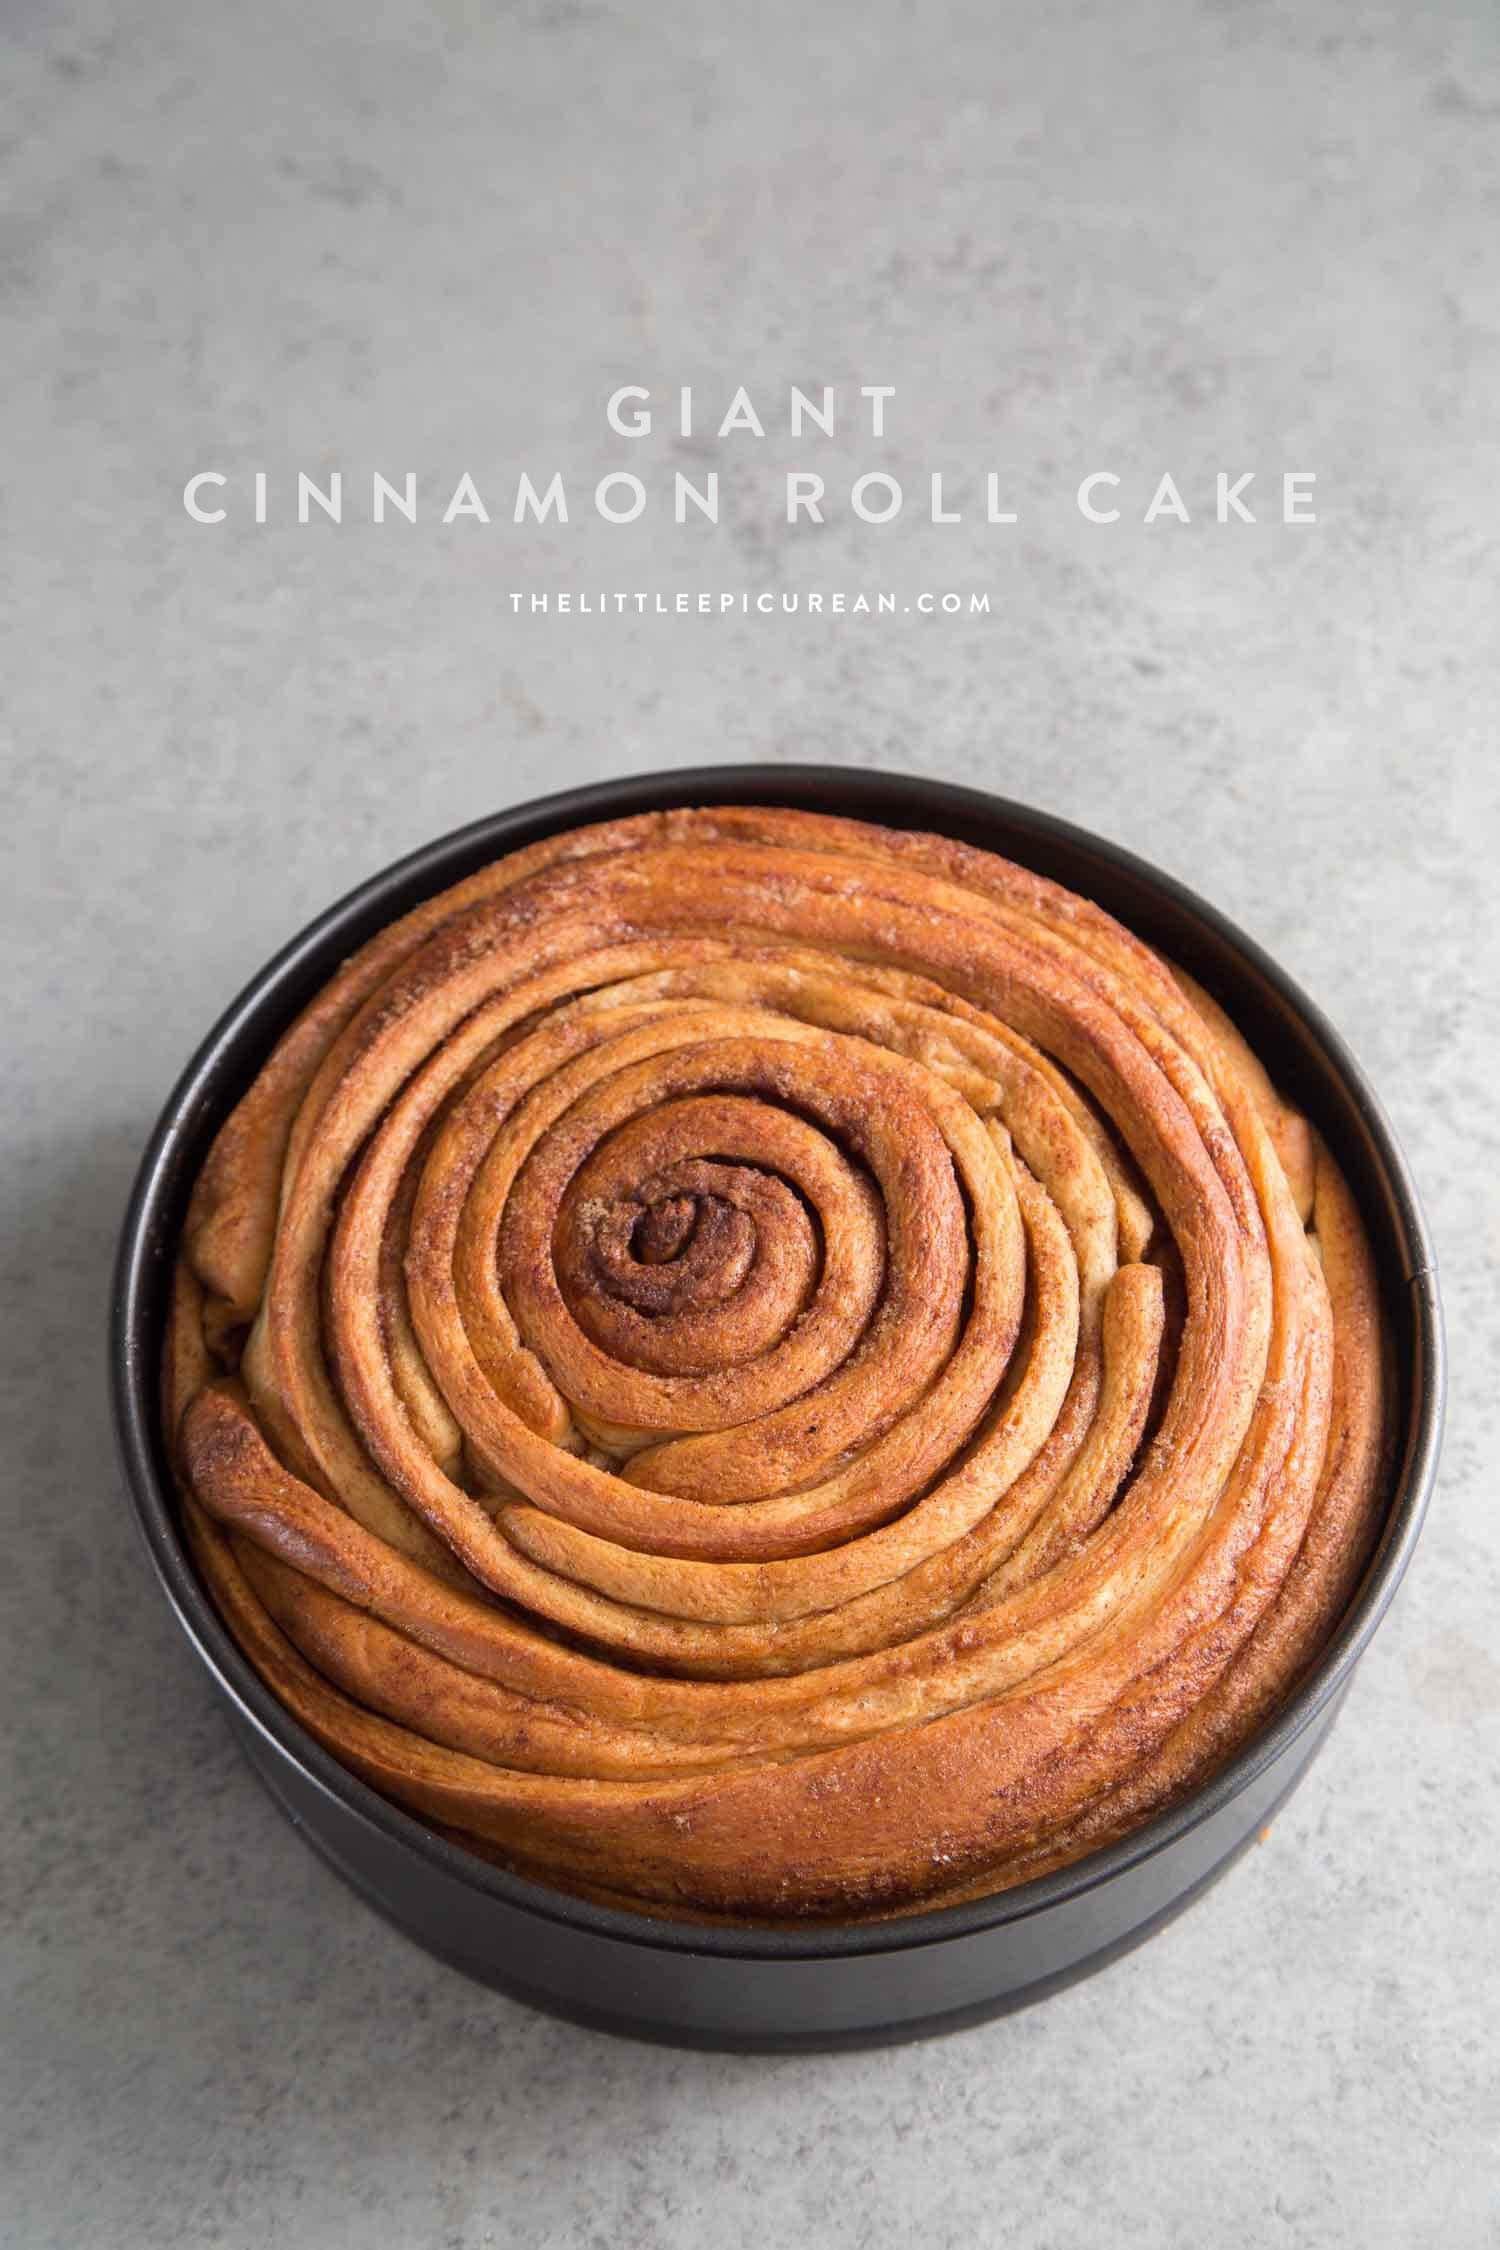 Giant Cinnamon Roll Cake